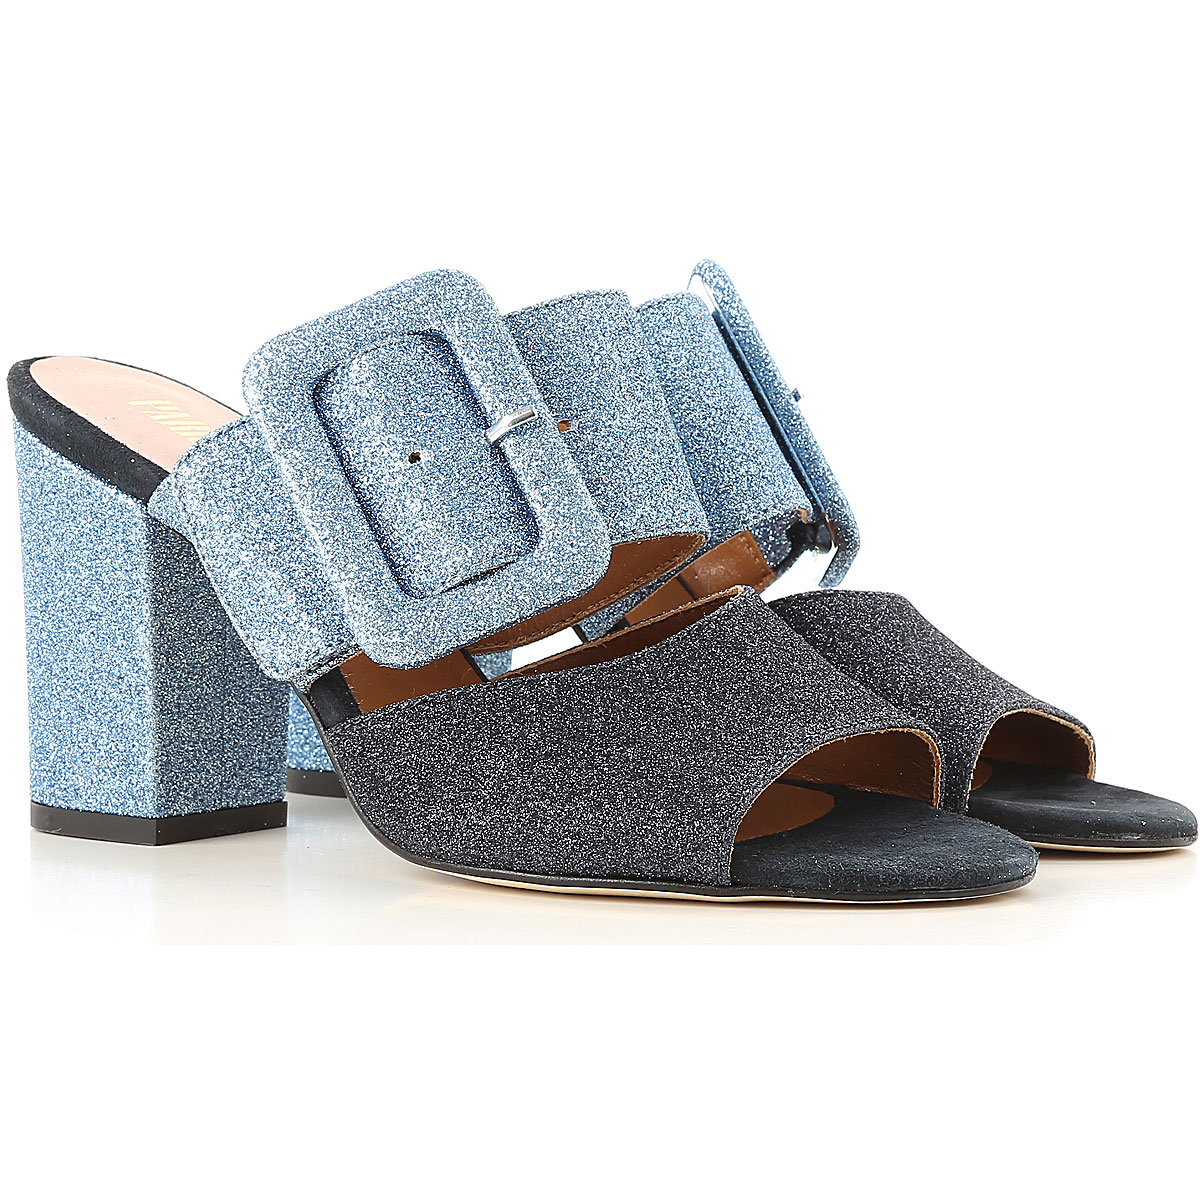 Image of Paris Texas Sandals for Women, Blue, Glittered, 2017, 10 6 7 8 8.5